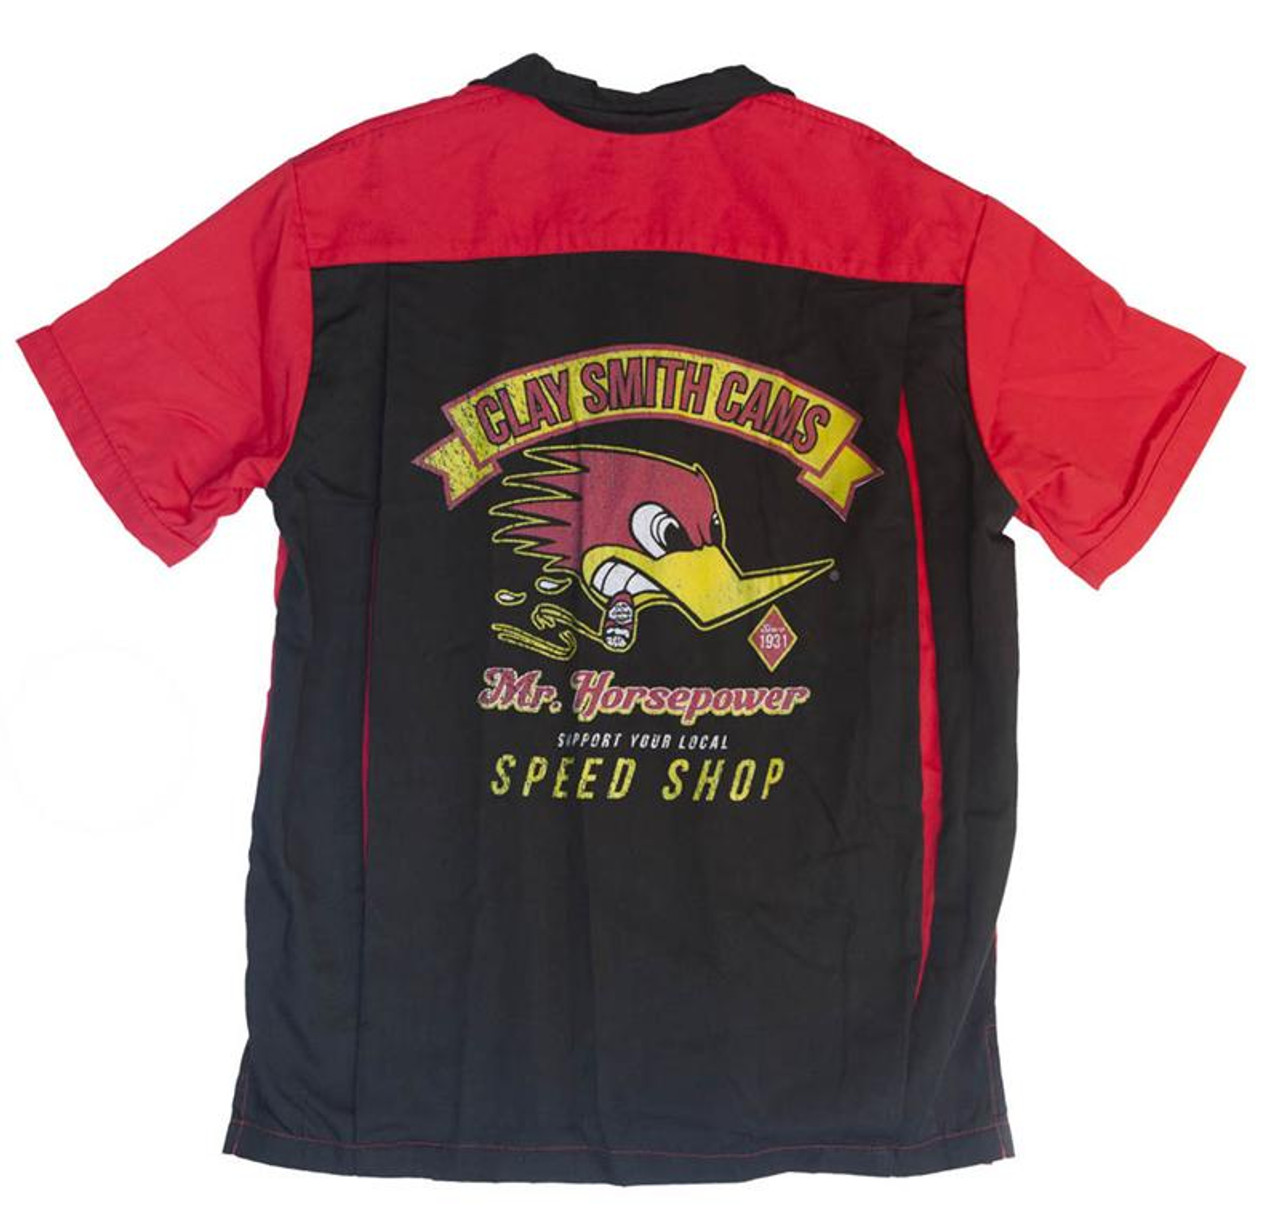 Support Local Speed Shop Bowler Shirt